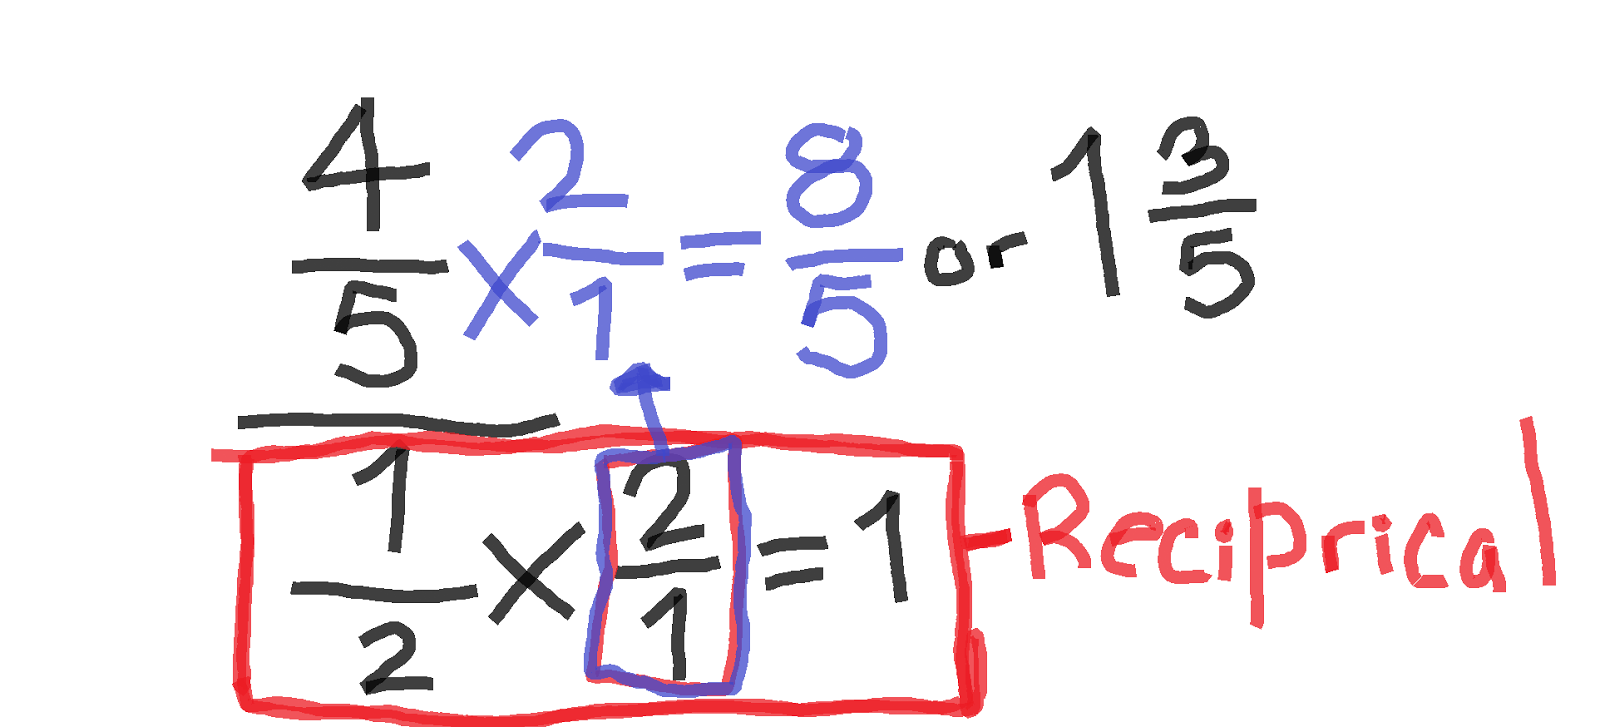 reciprocal fractions